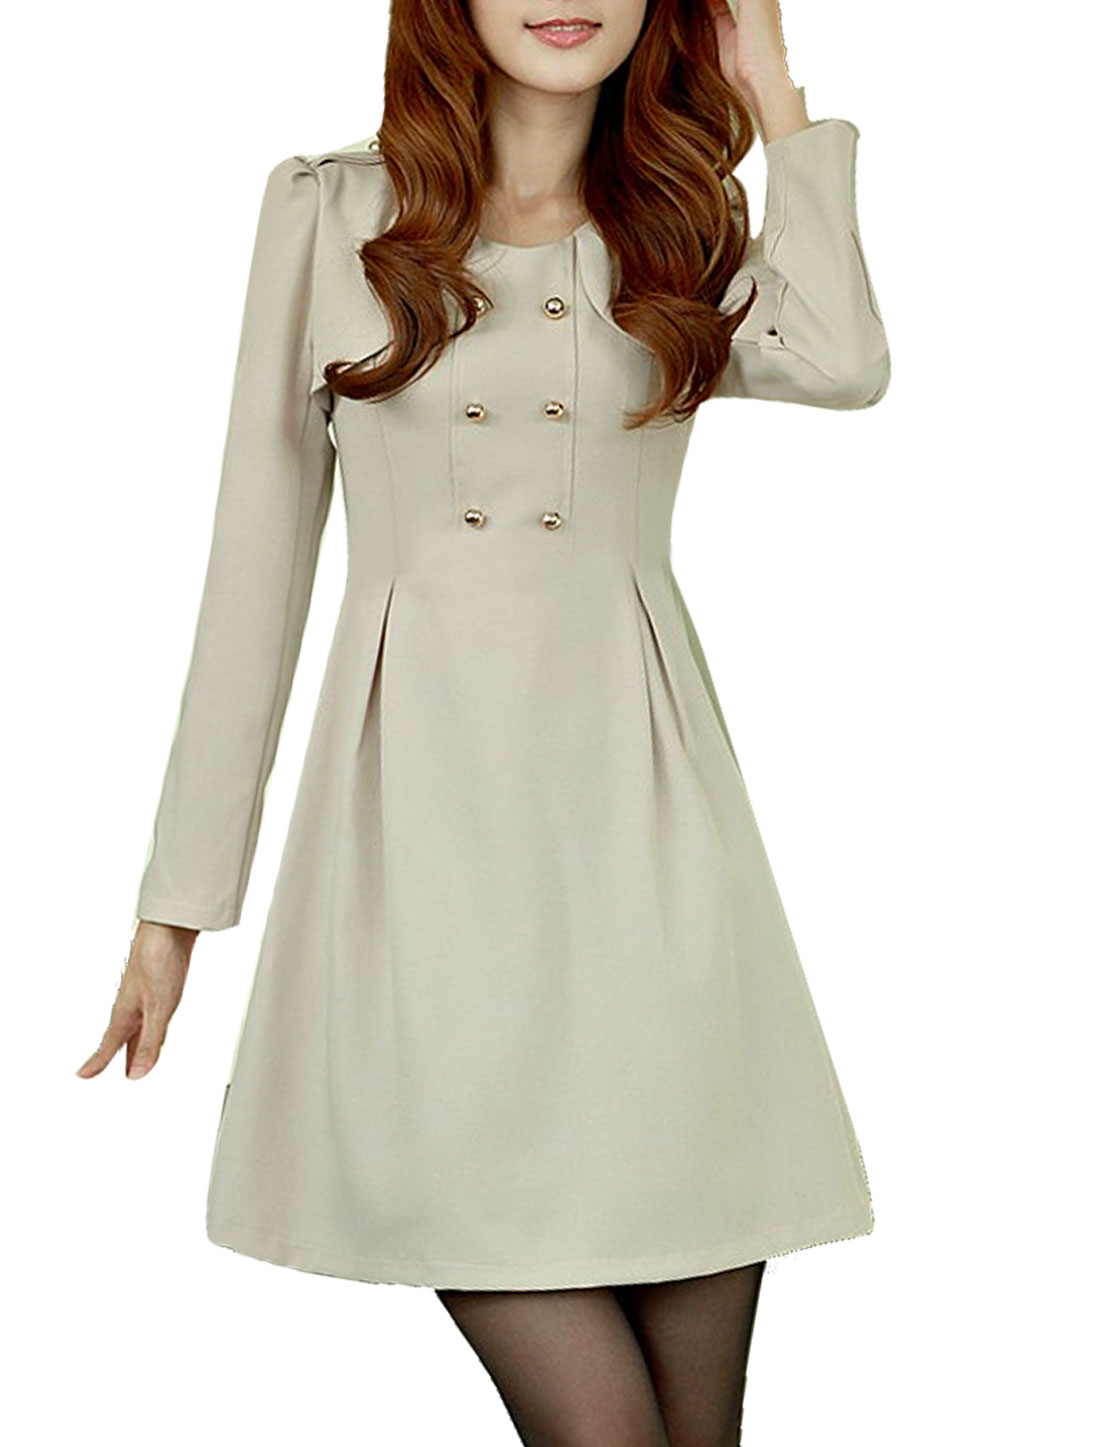 Autumn Scoop Neck Long Sleeve Ladies Pullover Apricot Dress XS